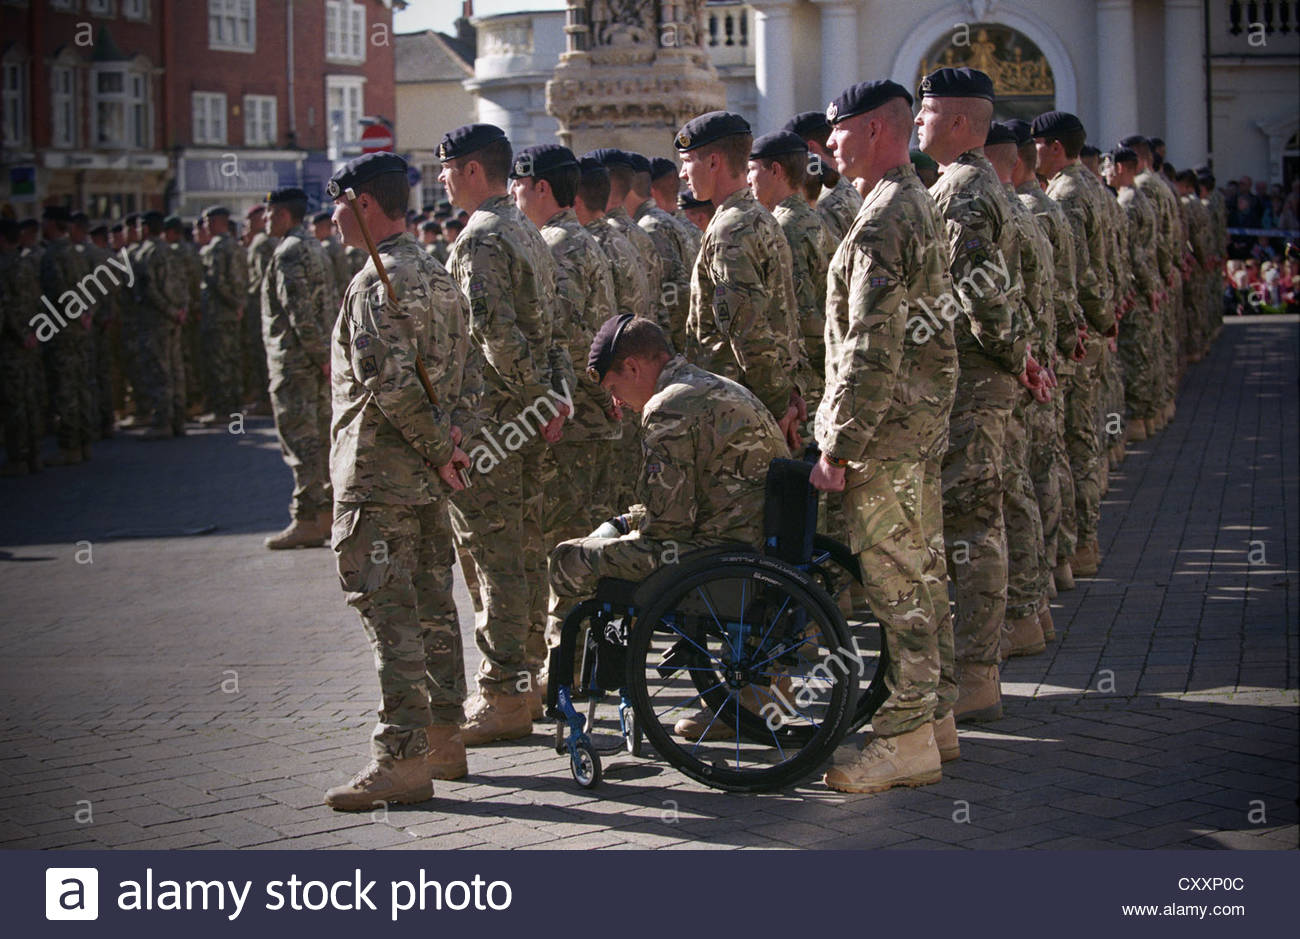 Homecoming parade for 33 engineer regiment for their service in afghanistan taking place in saffron walden